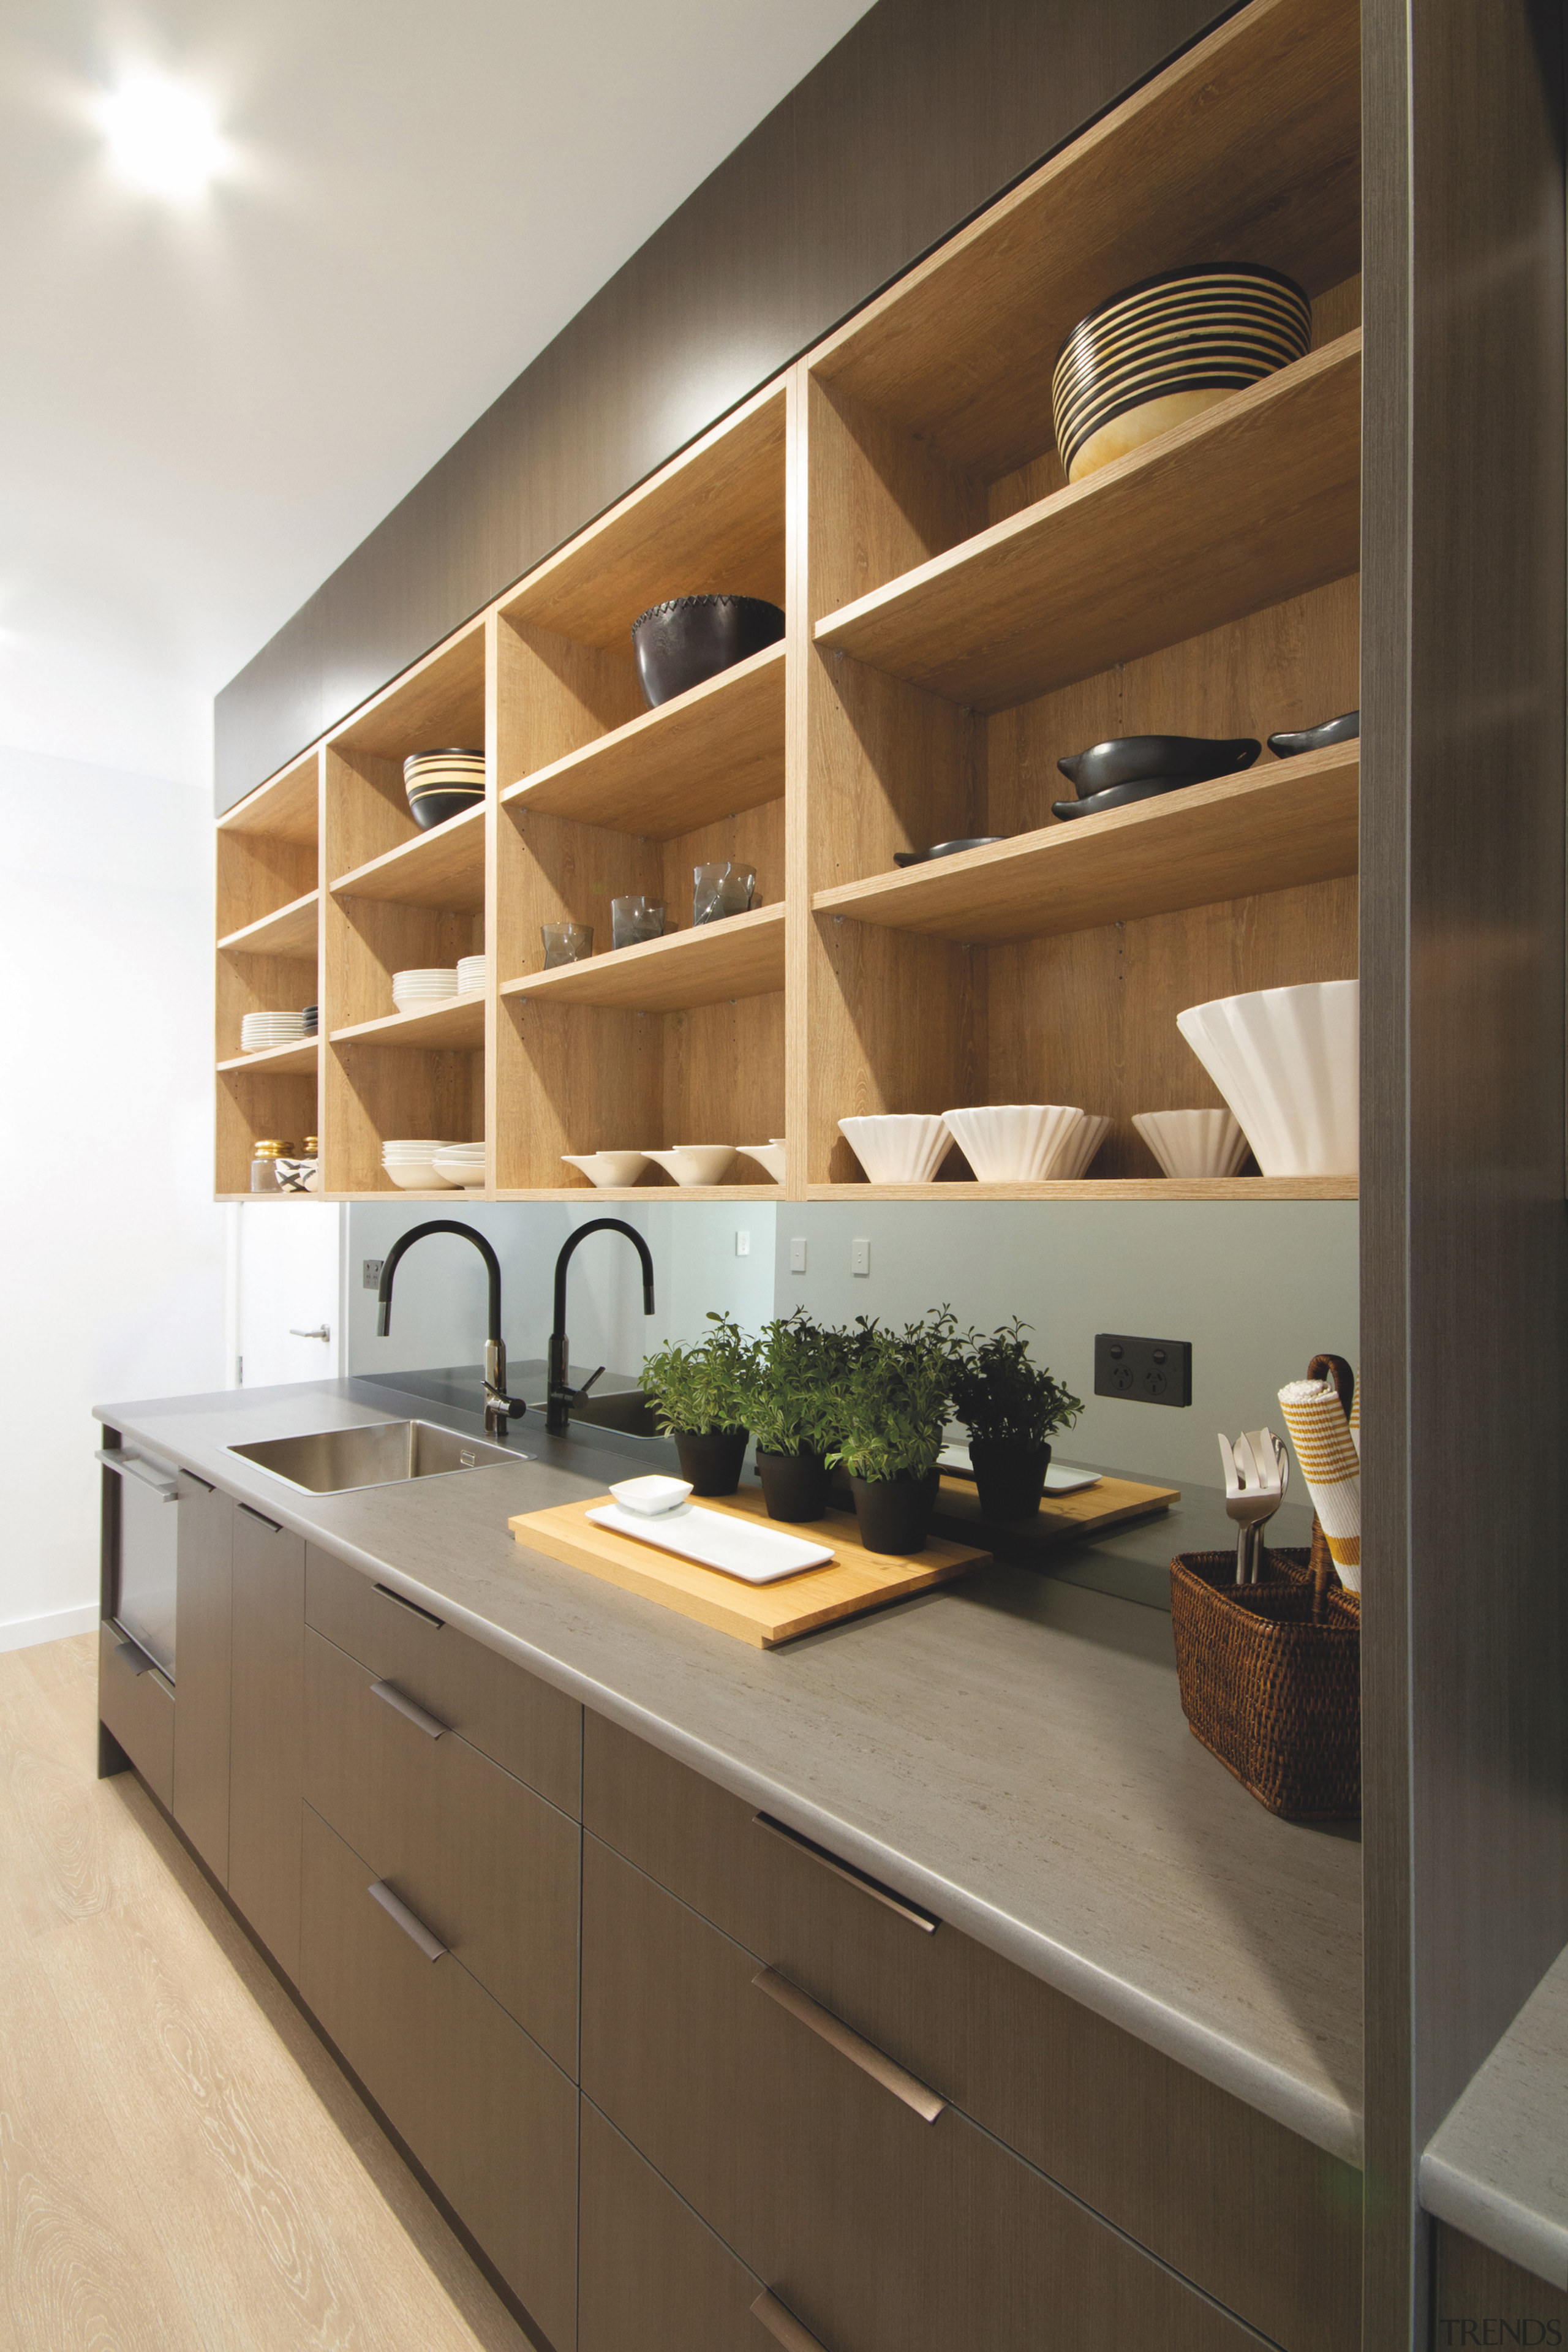 The large scullery includes feature timber display shelving.